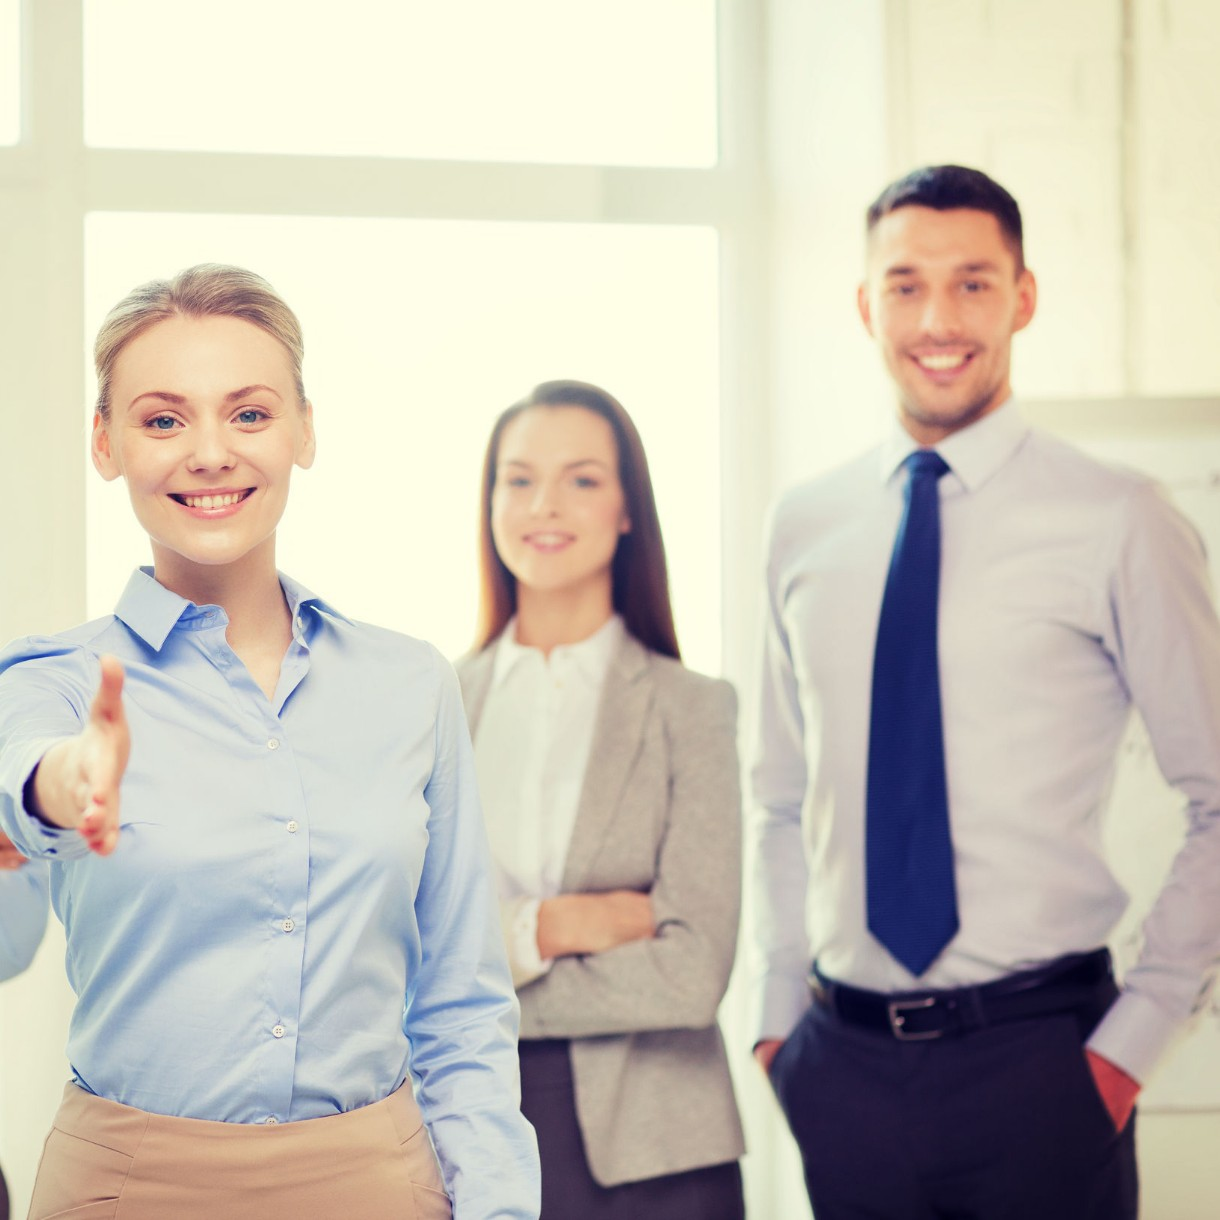 three business people smile and one extends her hand